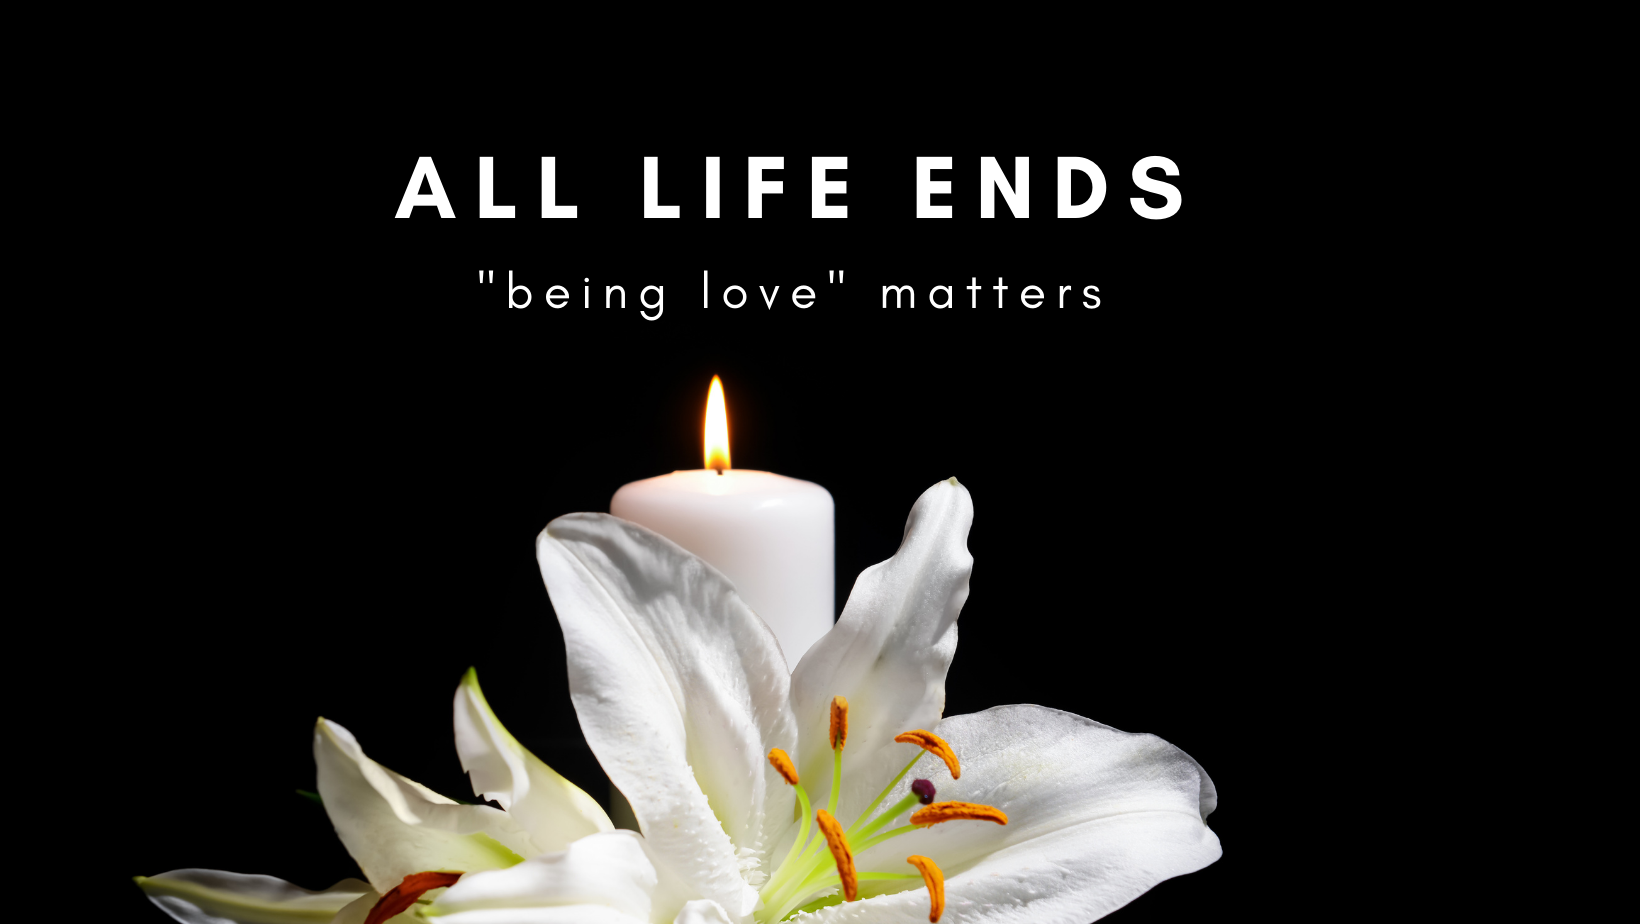 All Life's End, Being Love Matters